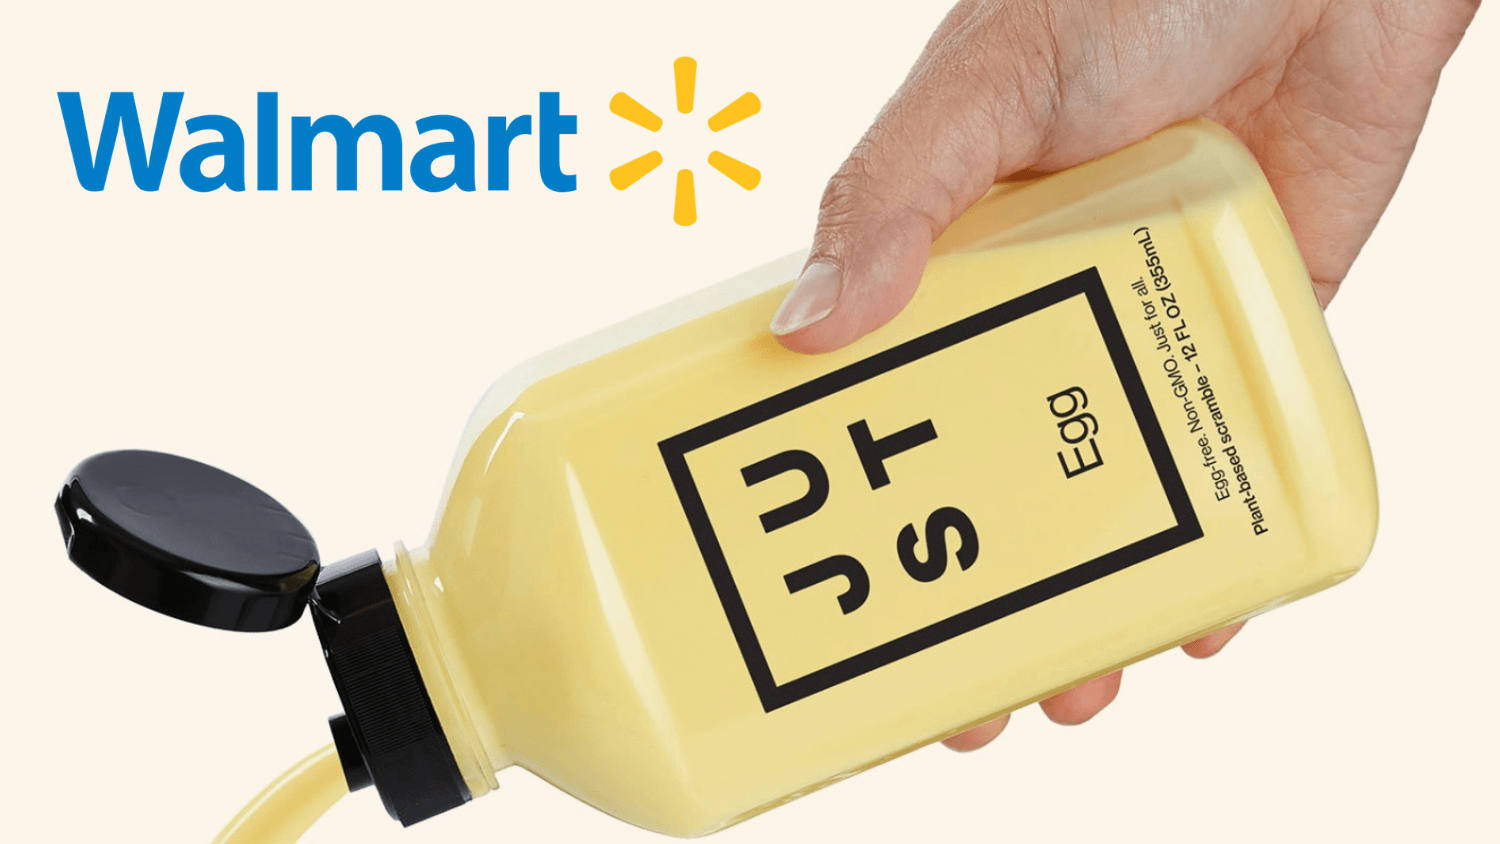 Walmart Now Sells Vegan JUST Eggs And We're So Here For It